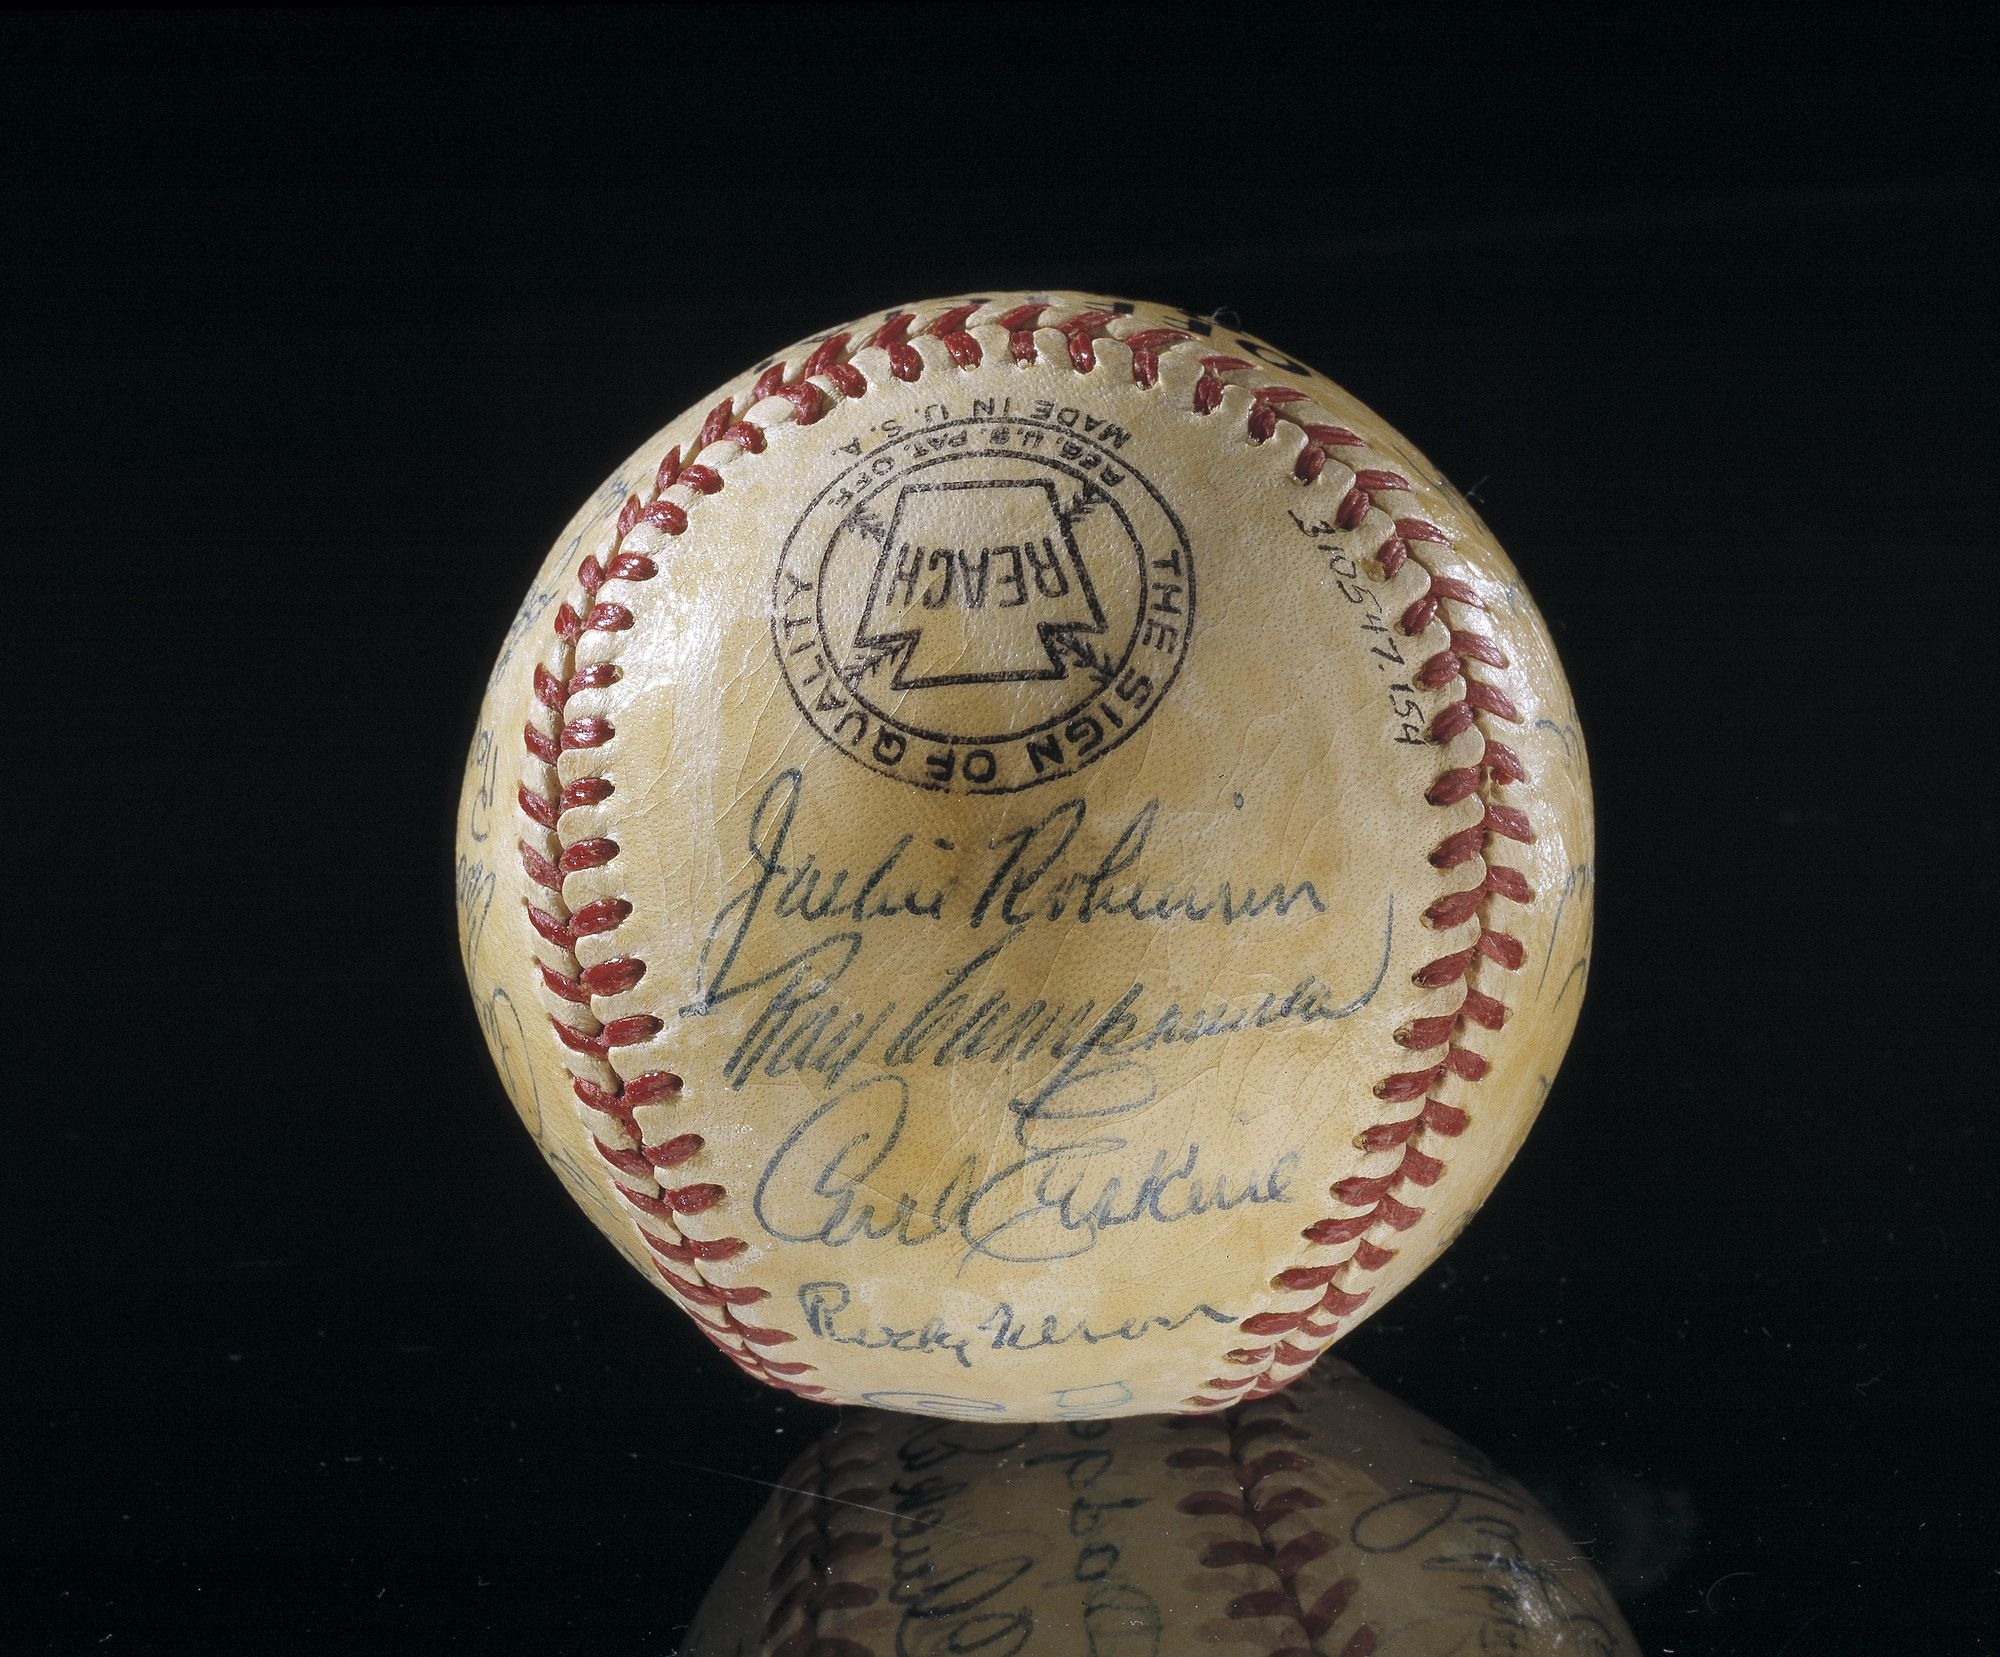 Signed ball by the 1952 World Series runnerup Brooklyn